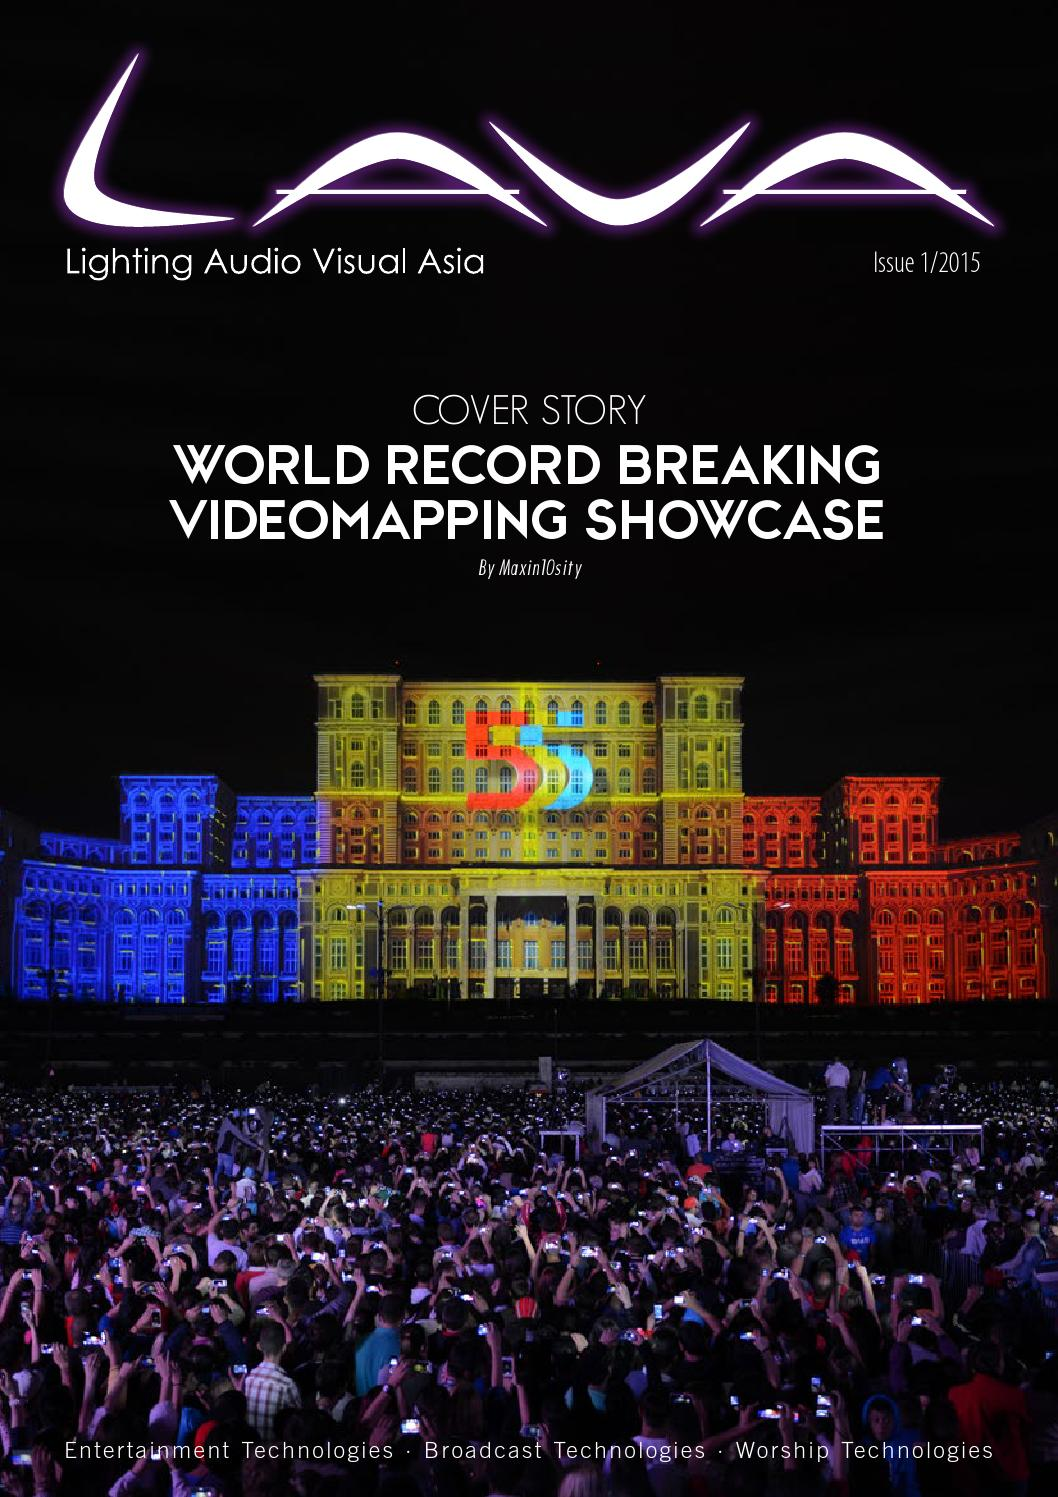 lava vol 1 2015 by lighting audio visual asia issuu rh issuu com